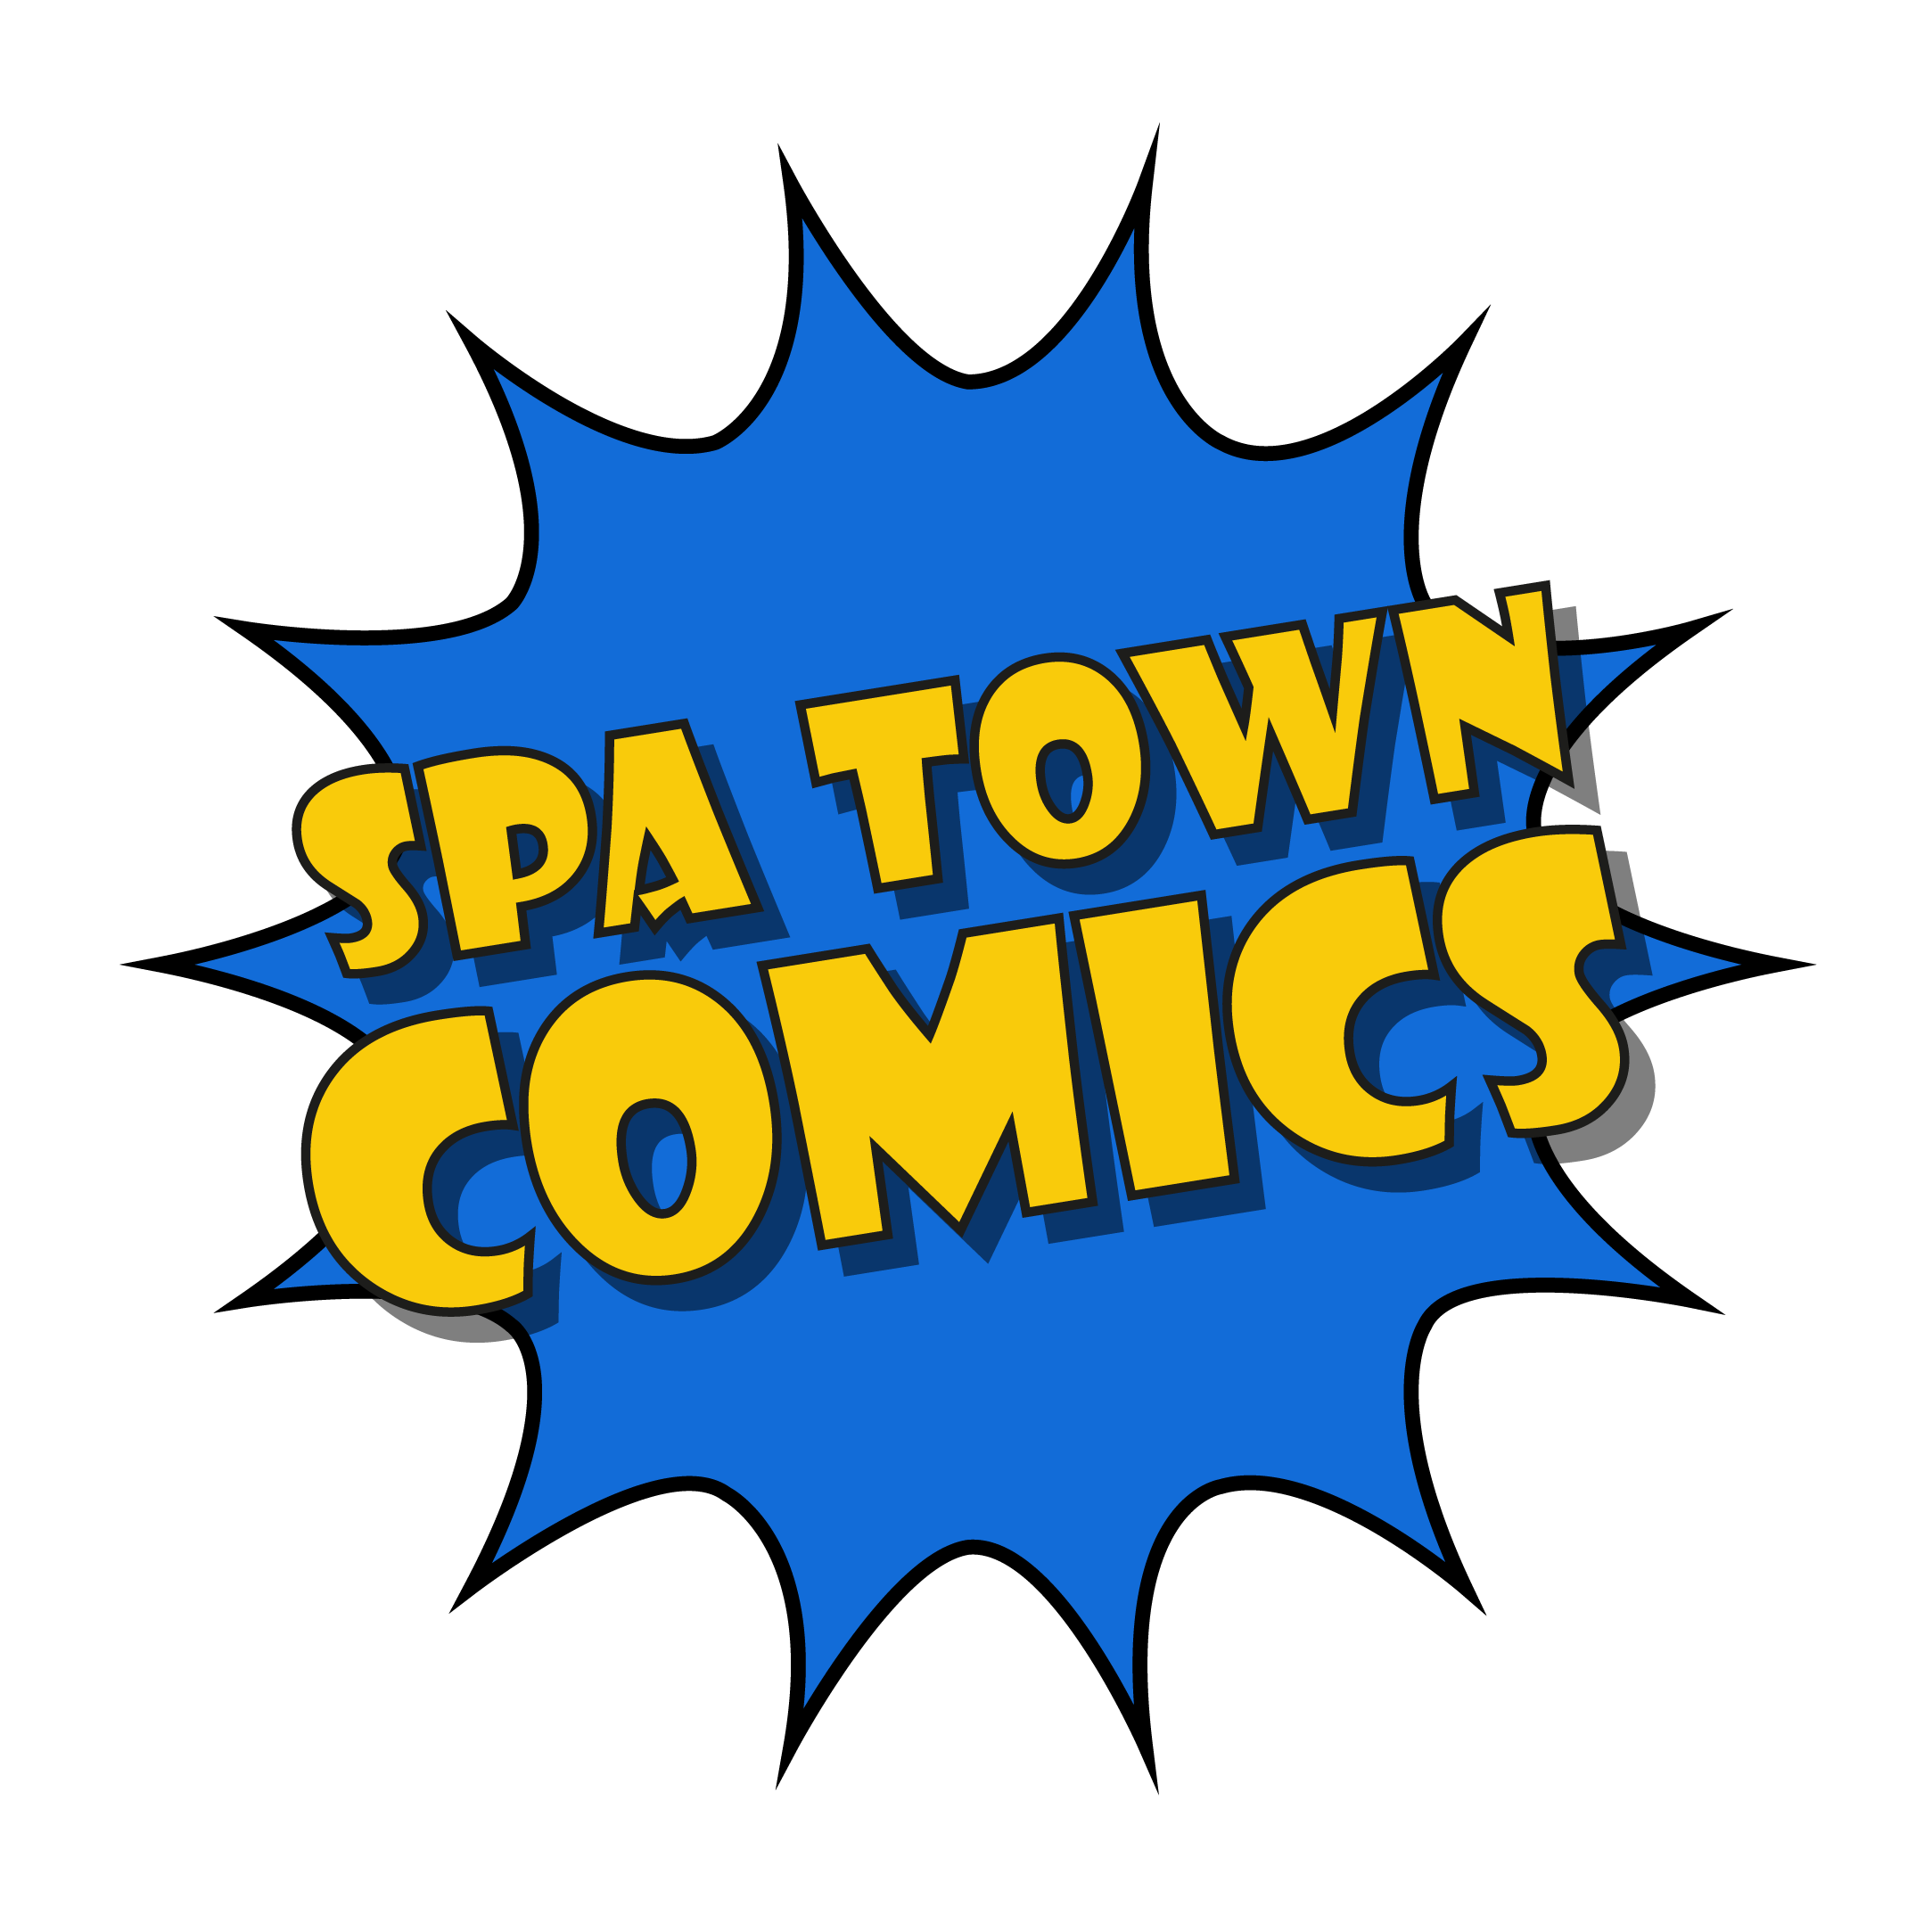 Spa Town Comics Pop-up